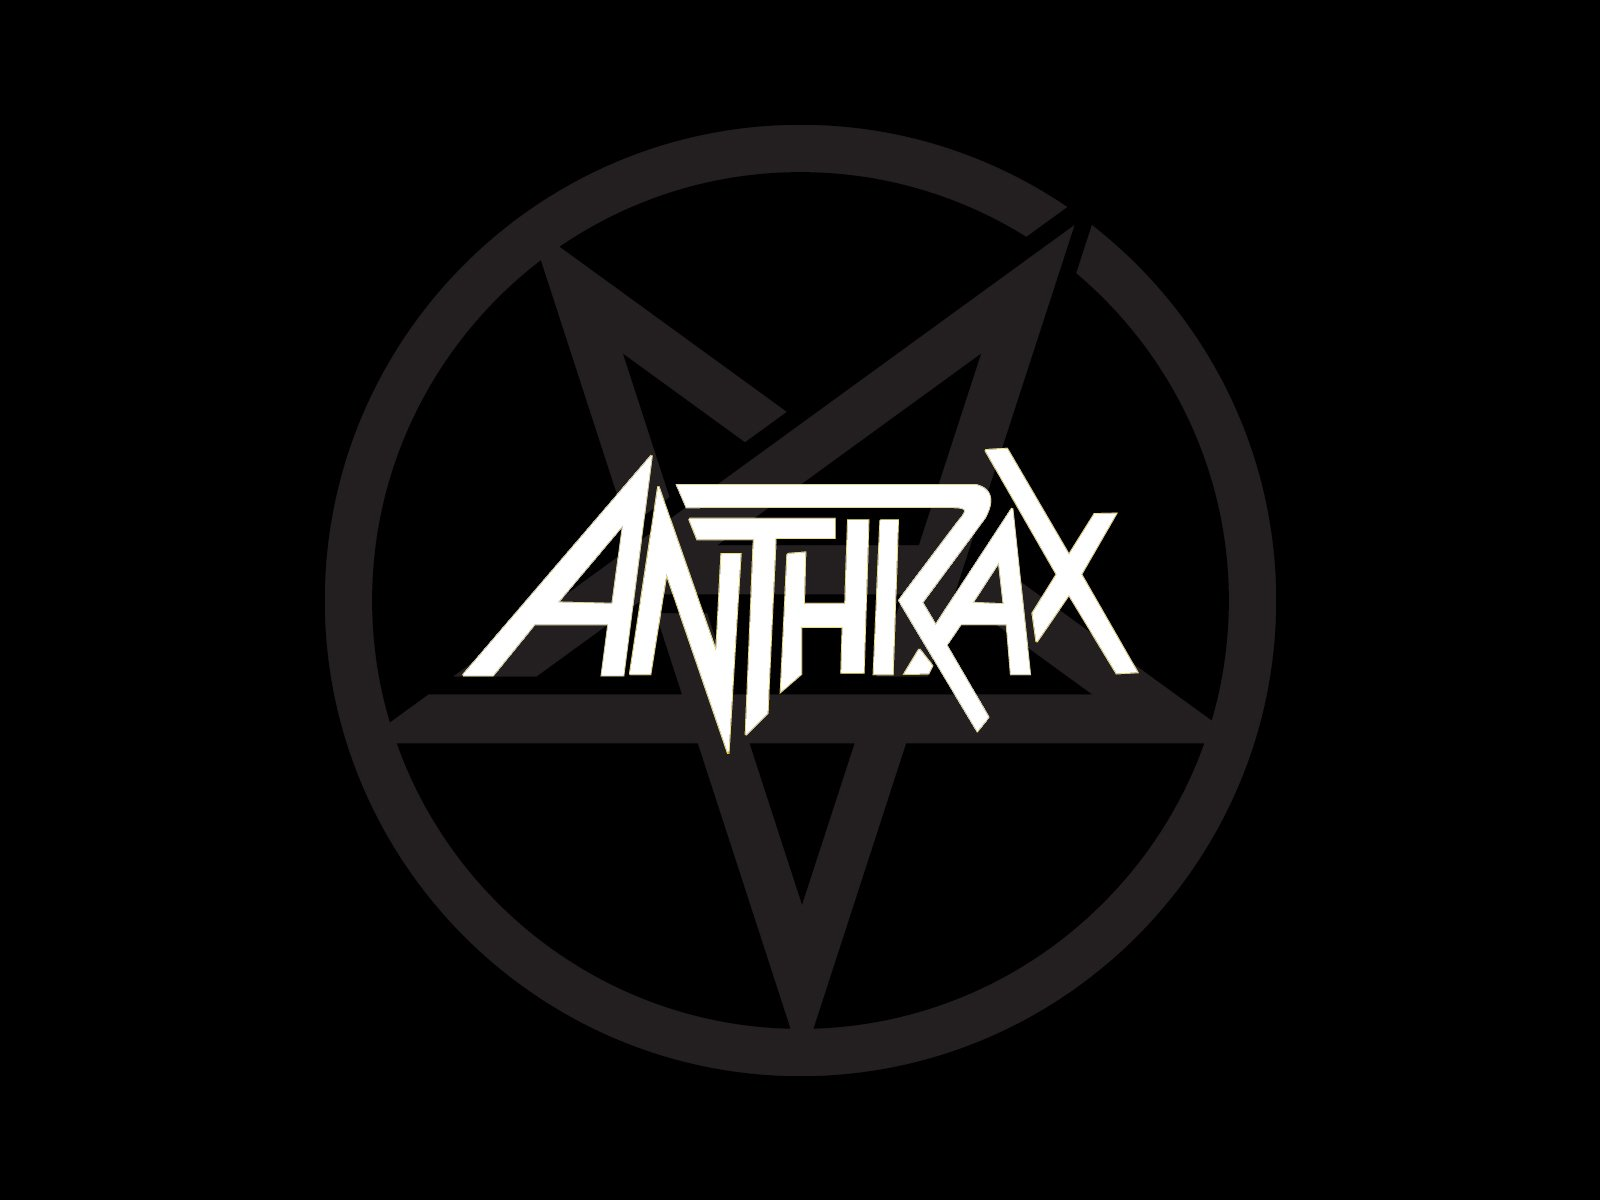 Anthrax Band Wallpaper